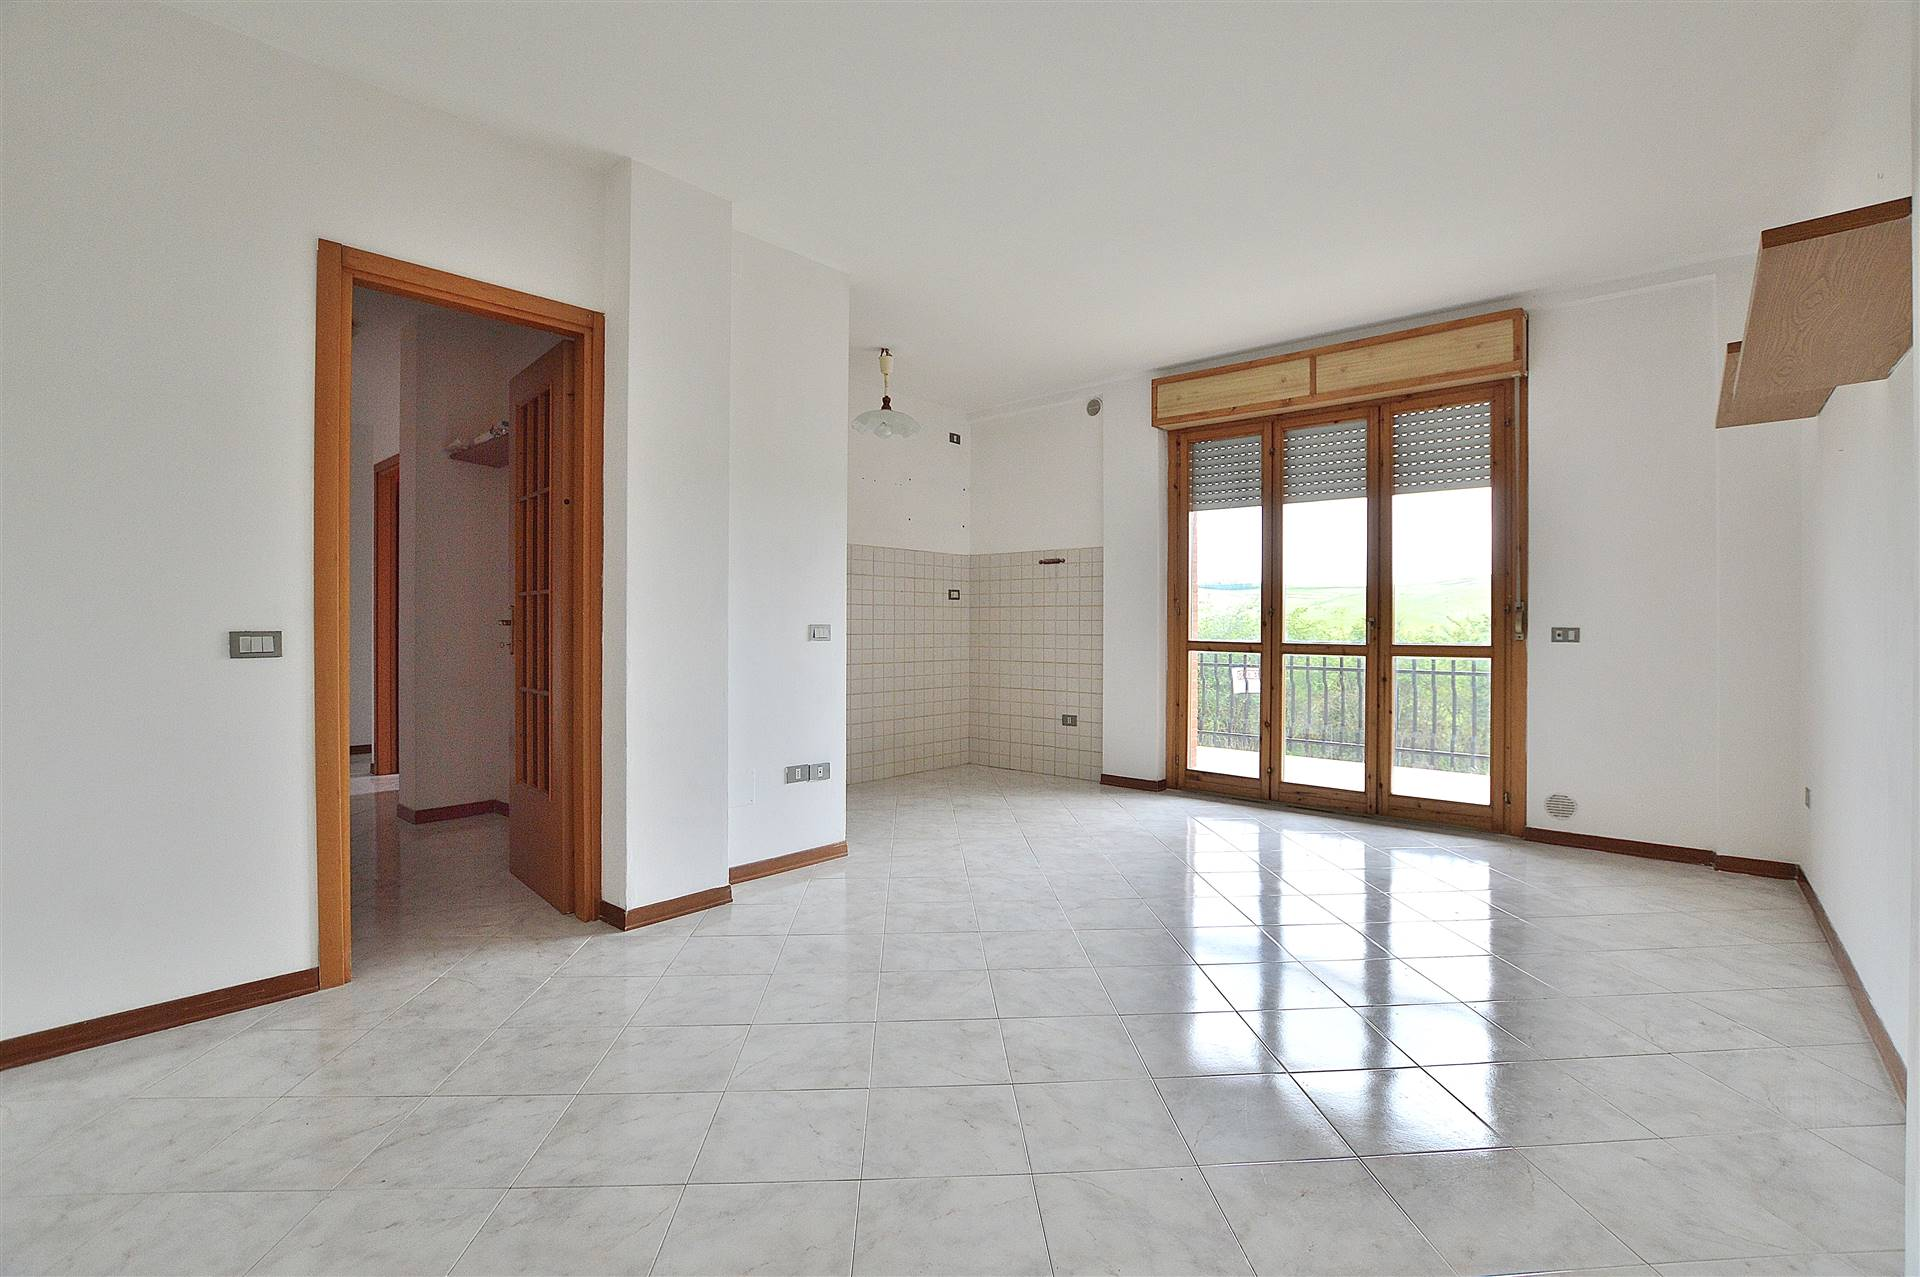 ISOLA D'ARBIA, SIENA, Apartment for sale of 72 Sq. mt., Good condition, Heating Individual heating system, Energetic class: G, Epi: 175 kwh/m2 year, placed at 1° on 2, composed by: 3 Rooms,